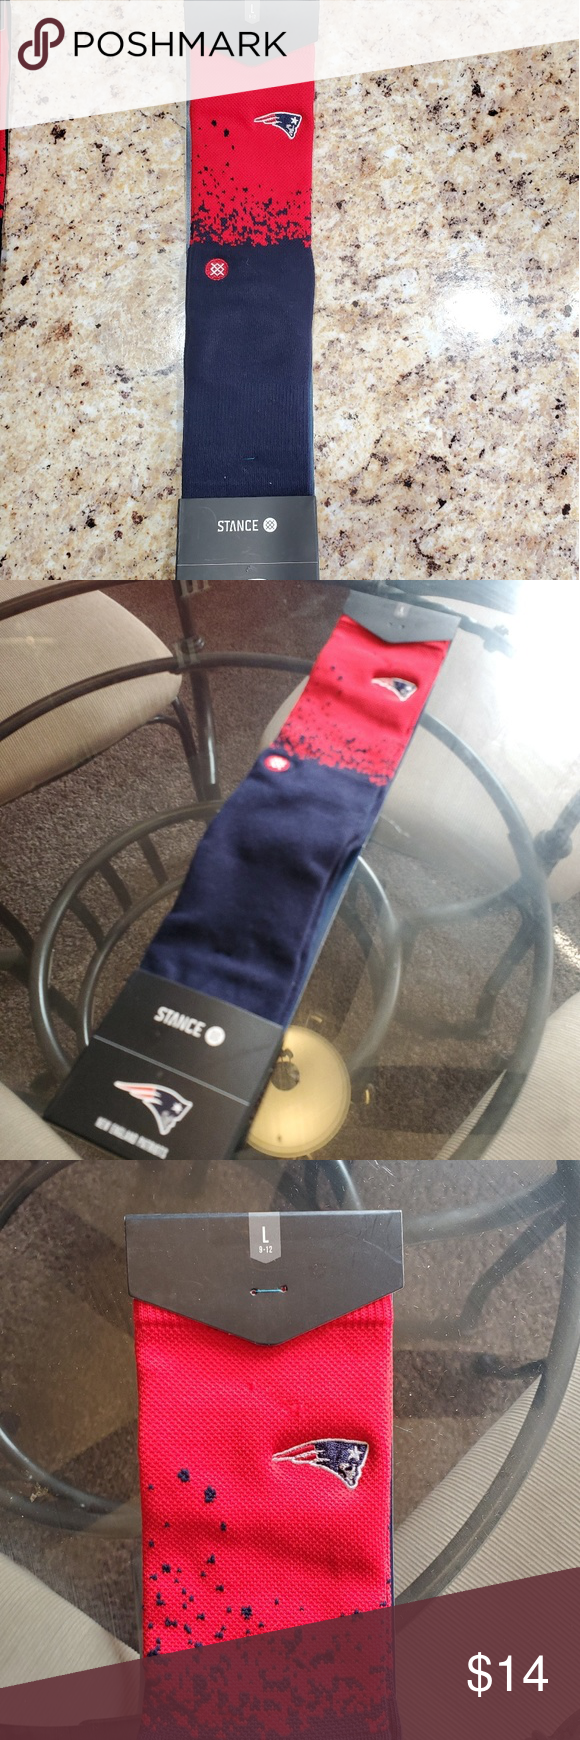 Nfl New England Patriots Stance Socks These Are A Brand New Still In Packaging Nfl New England Patri Stance Socks Nfl New England Patriots New England Patriots